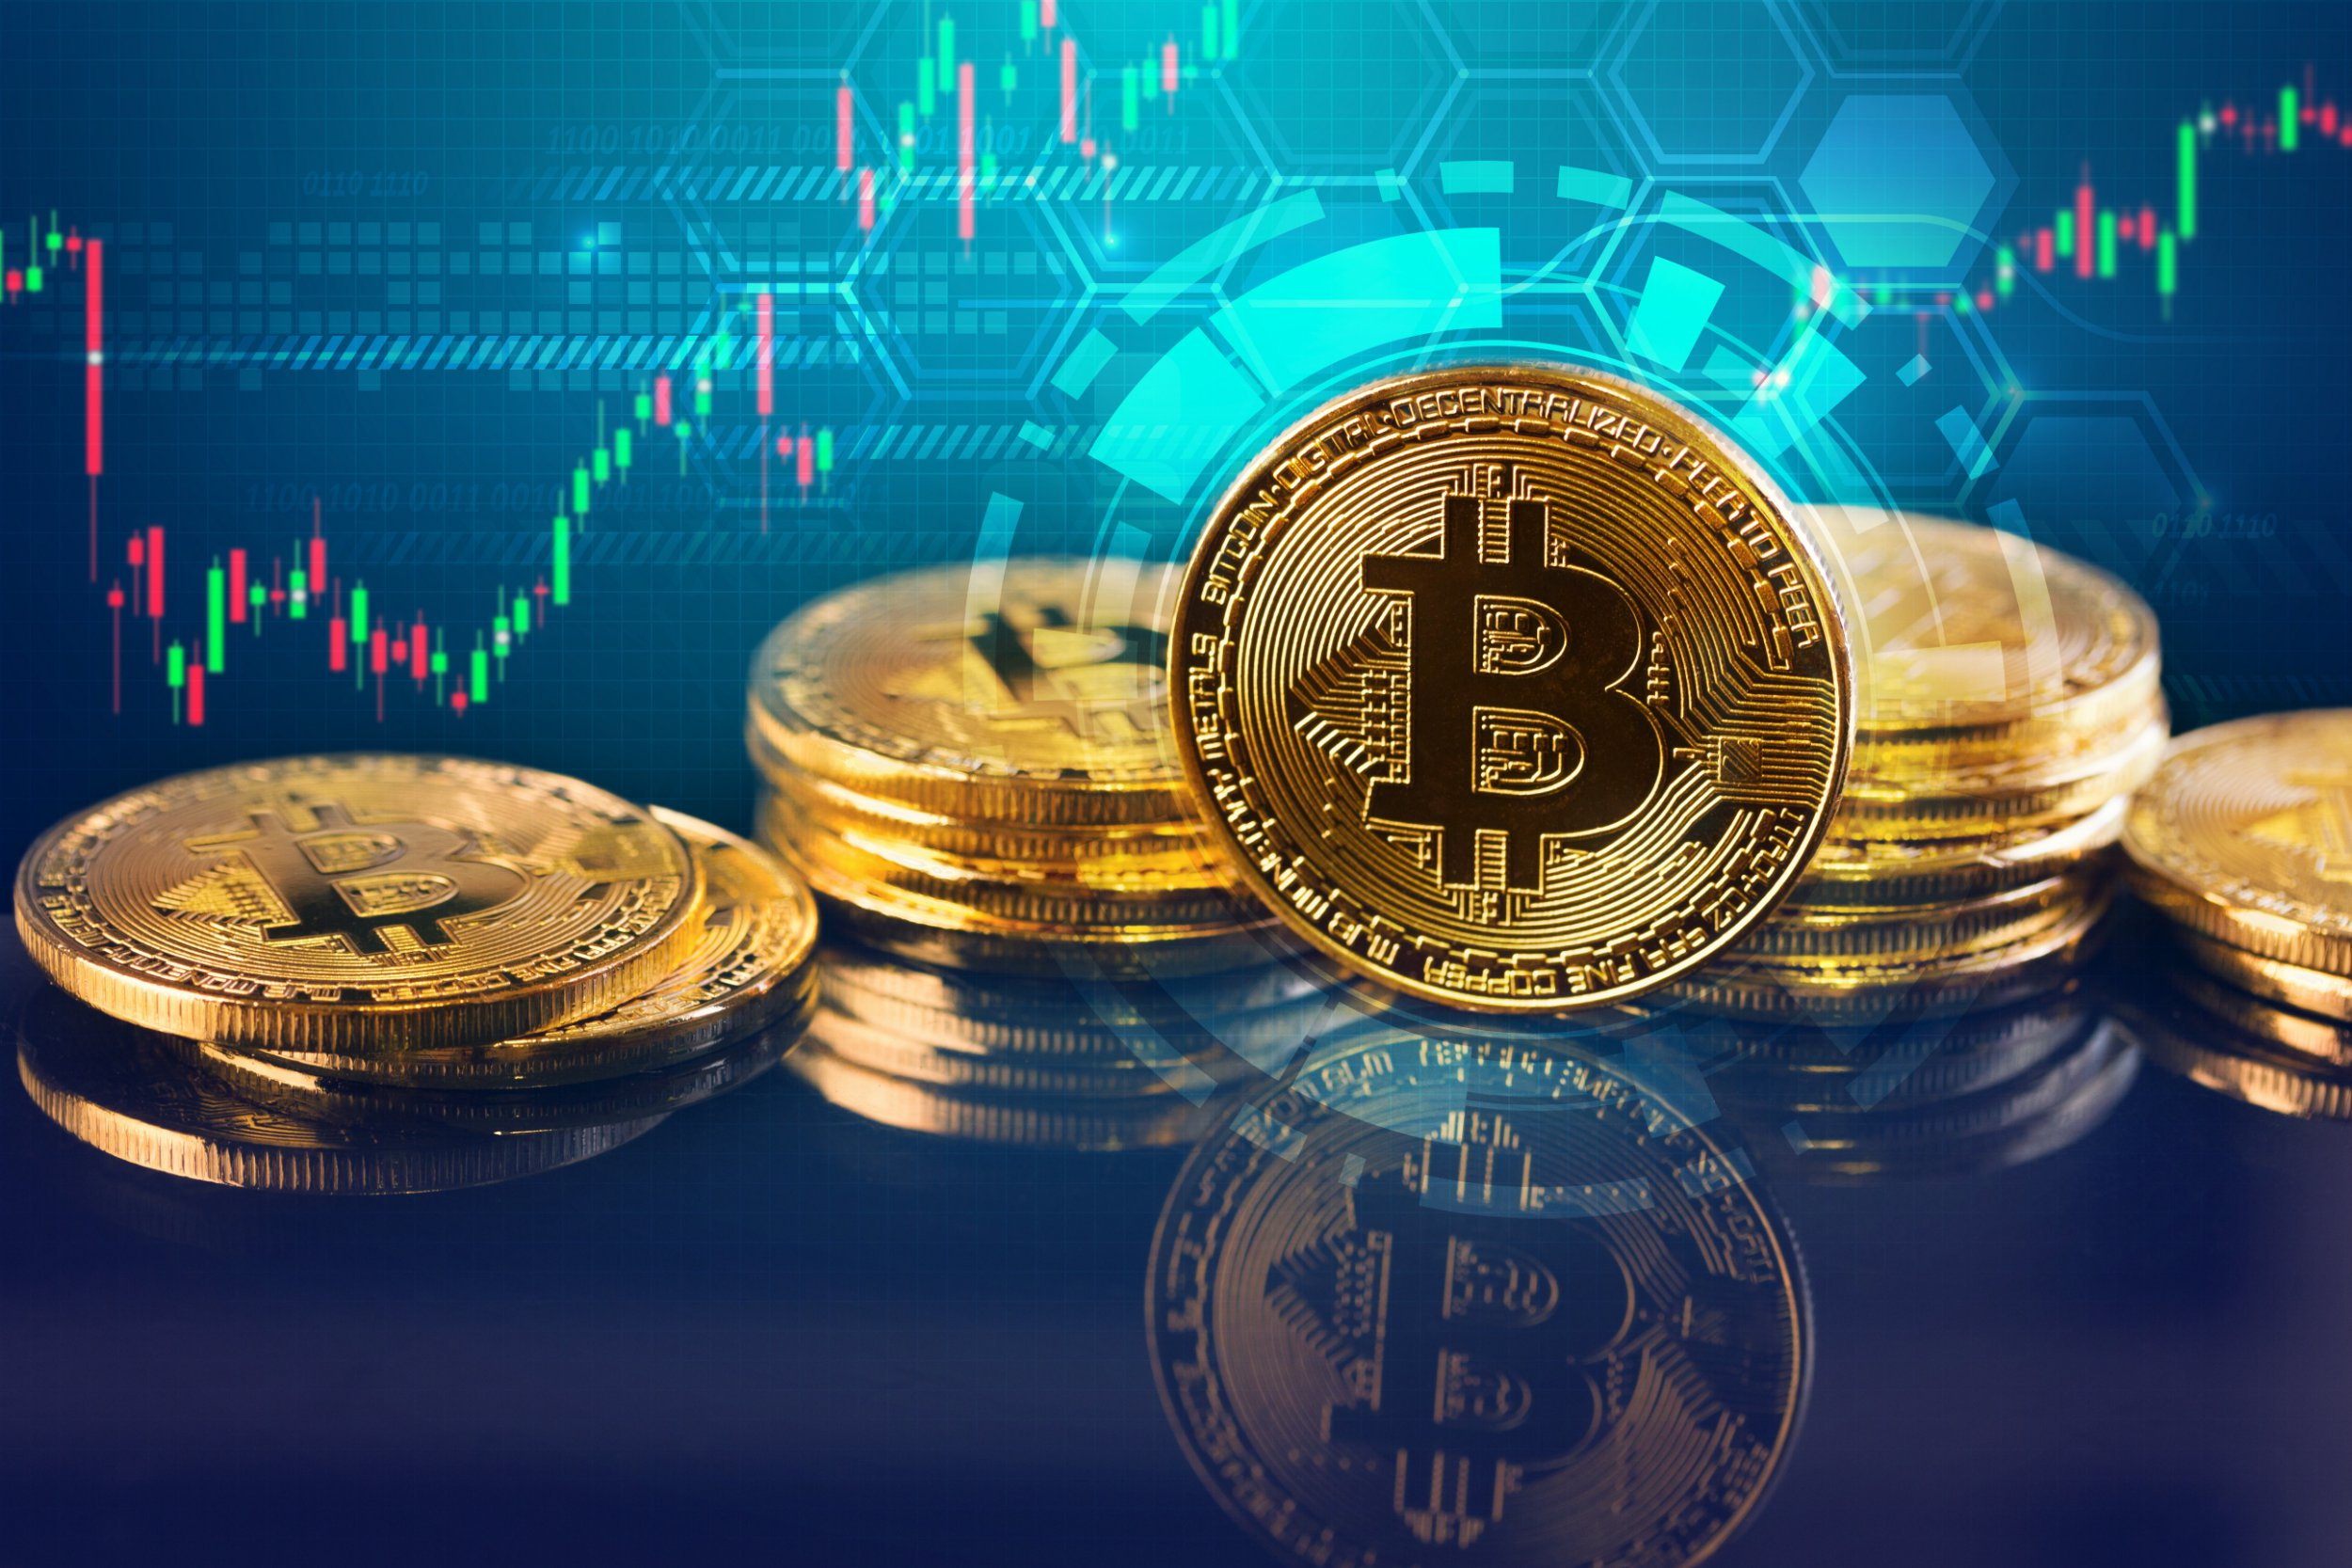 Bitcoin price hits lowest point since November as Ripple and Ethereum also continue to suffer